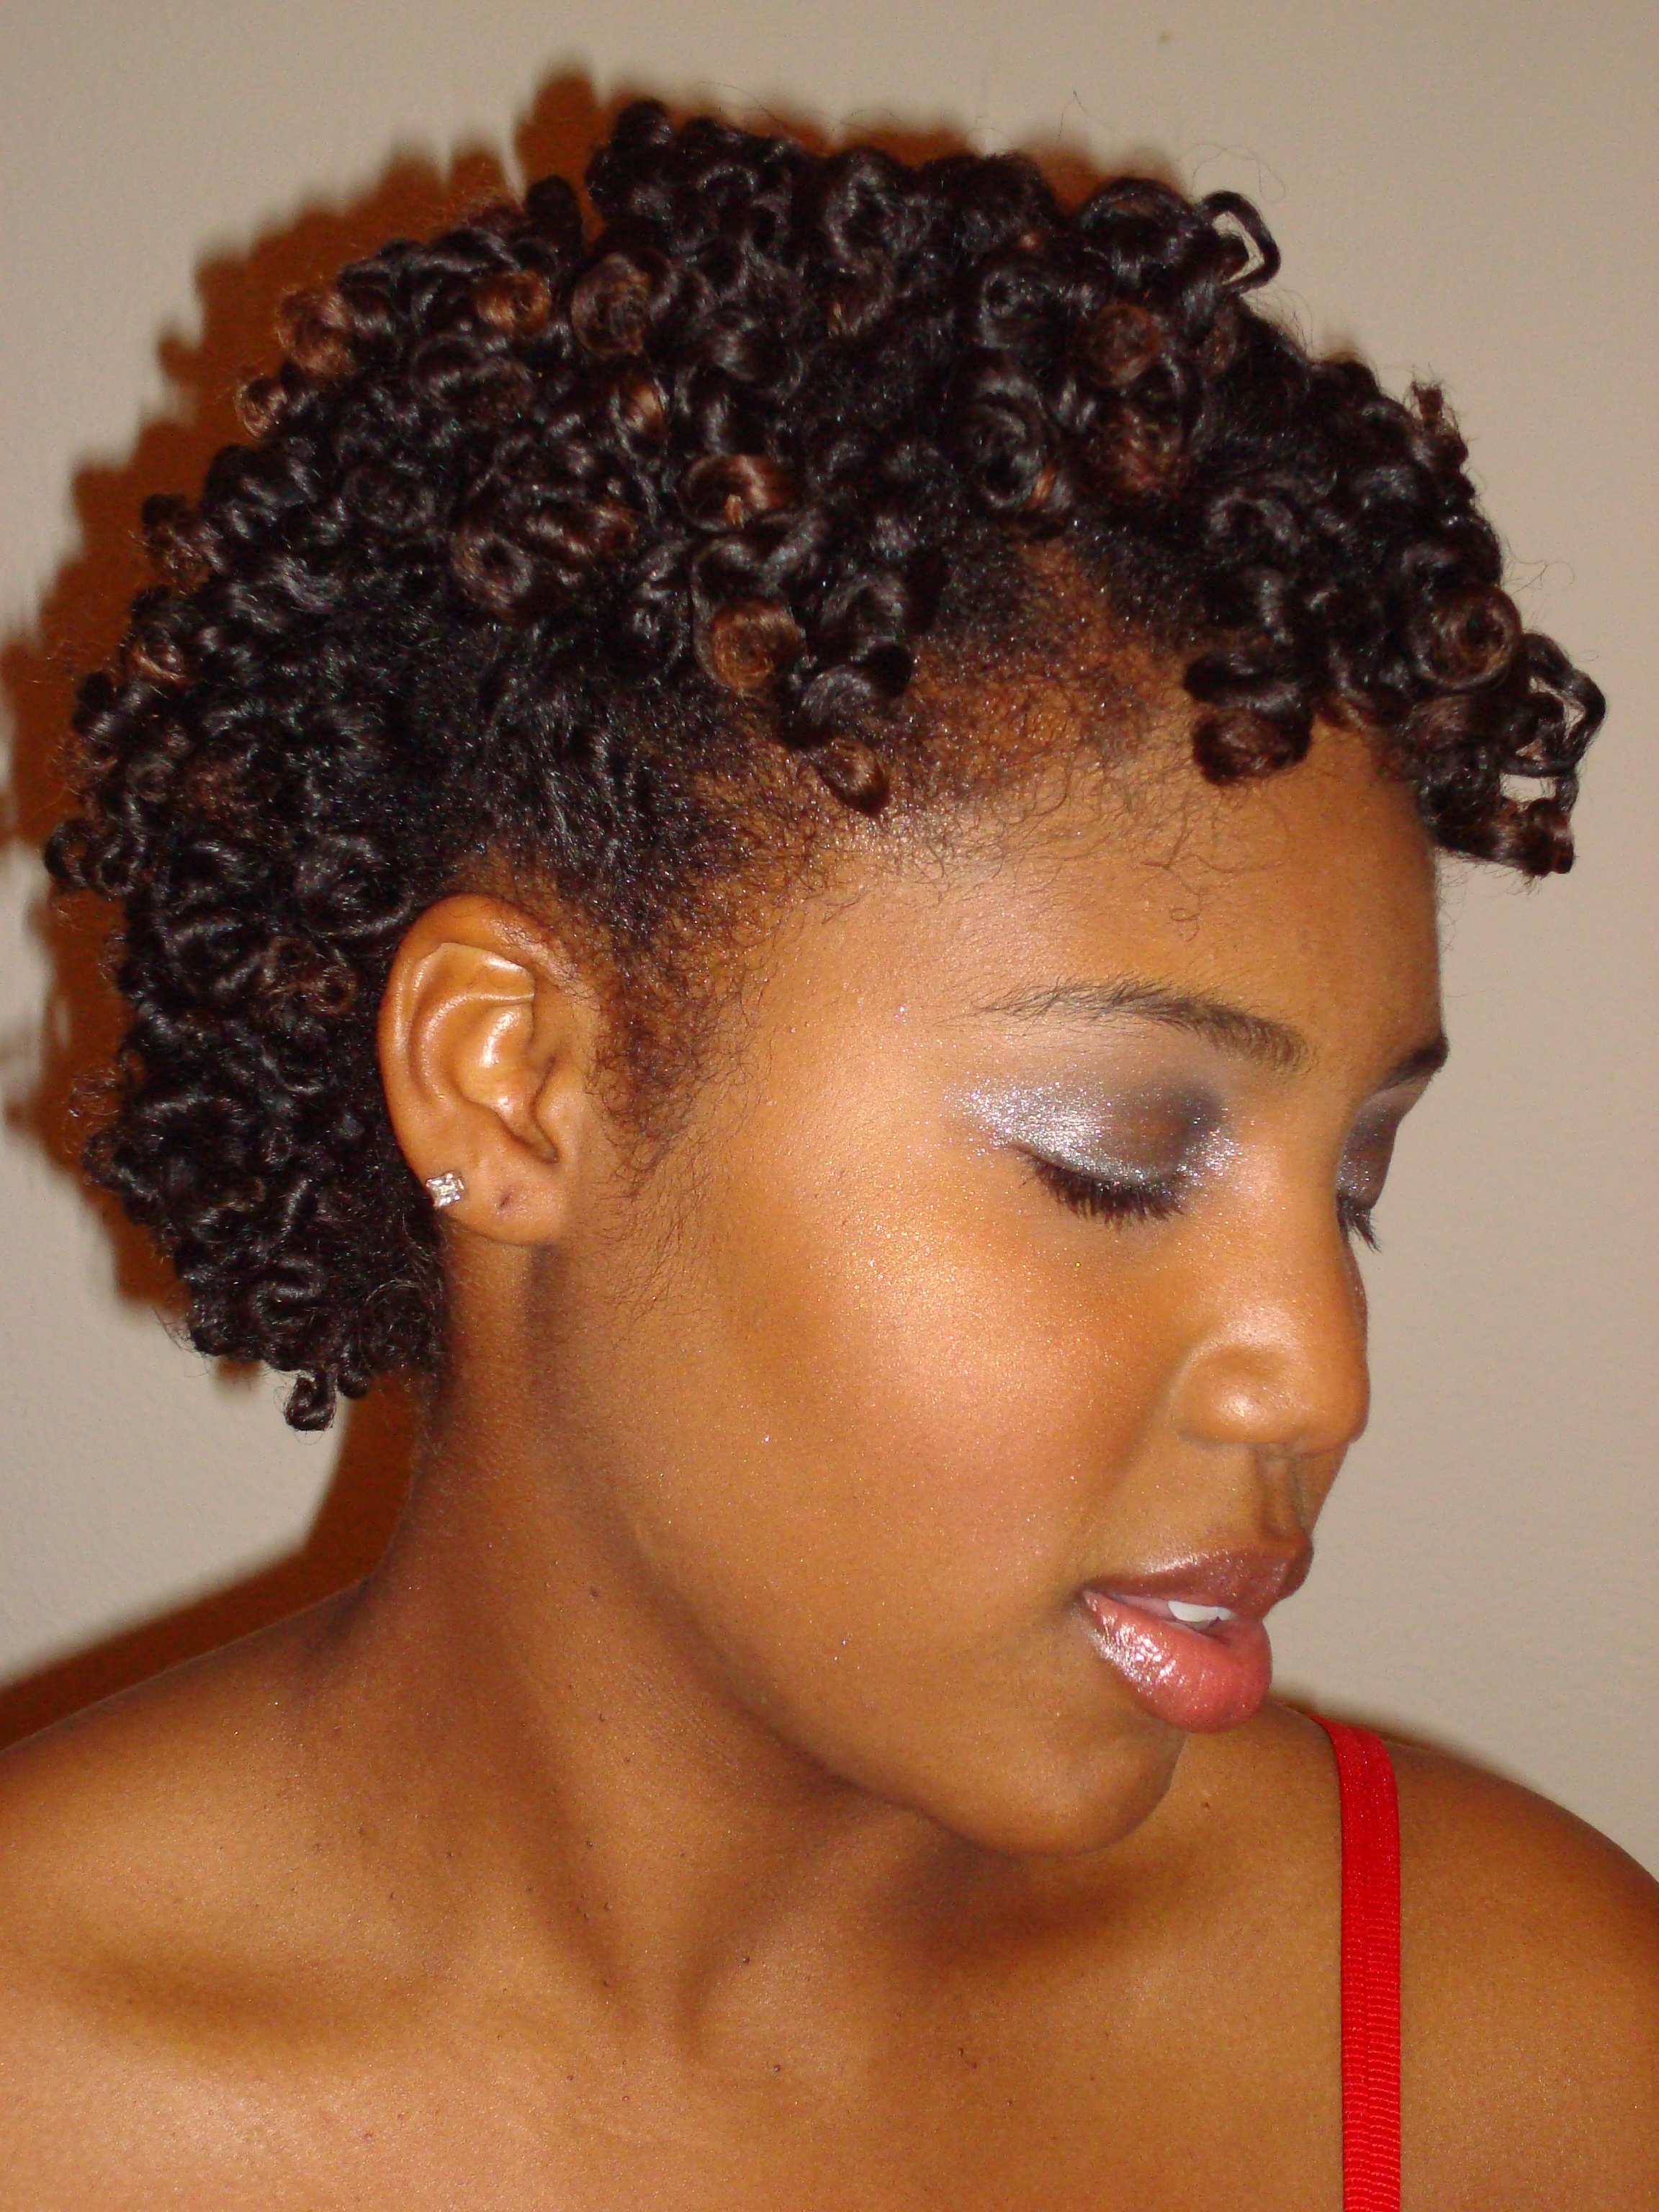 styles of natural hair hair styles hair 7555 | Profile pix